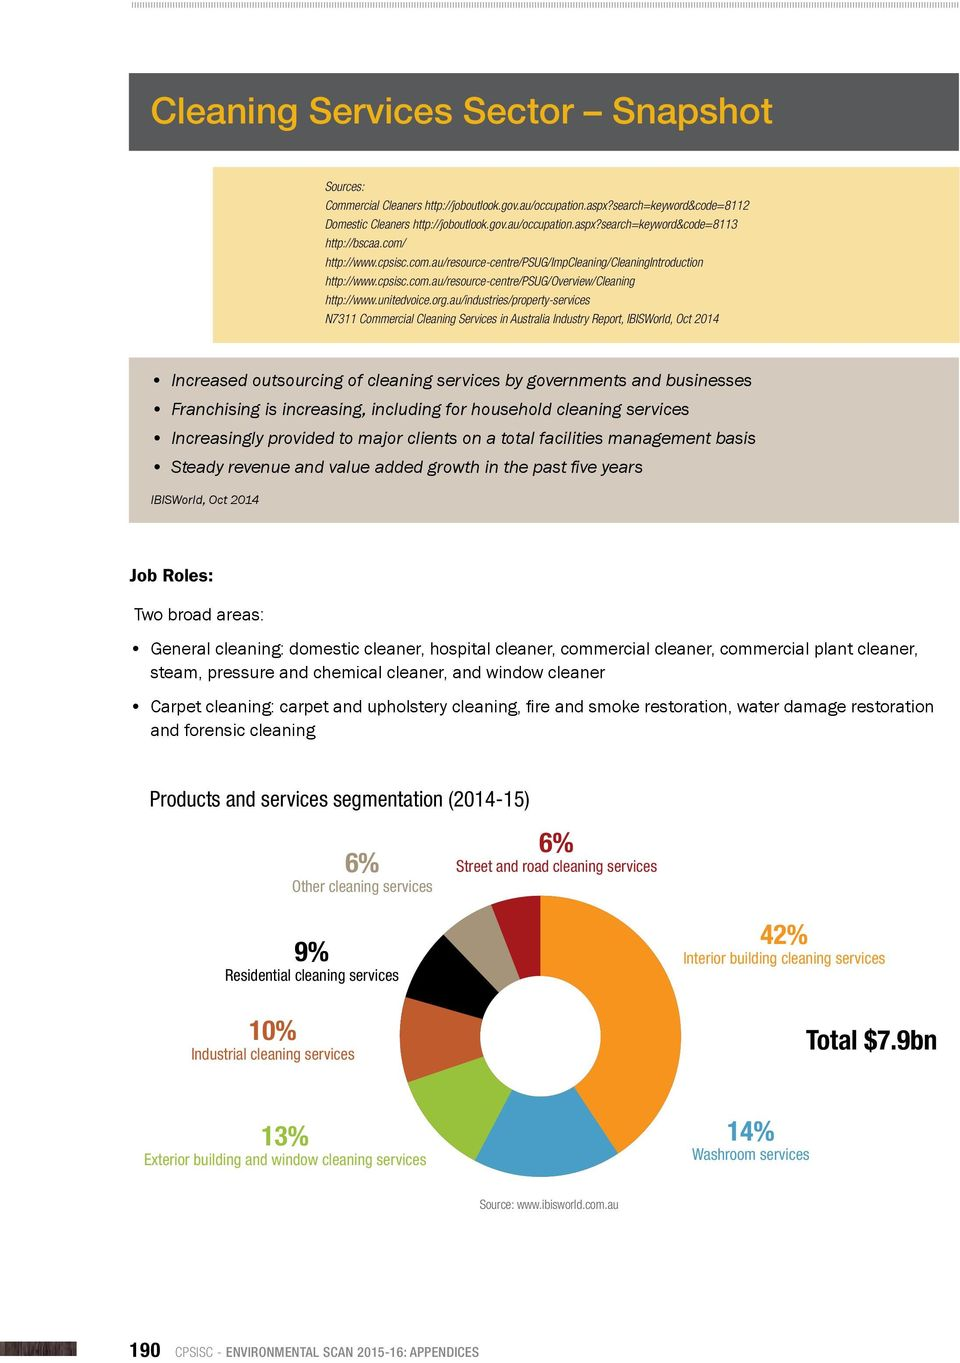 au/industries/property-services N7311 Commercial Cleaning Services in Australia Industry Report, IBISWorld, Oct 2014 Increased outsourcing of cleaning services by governments and businesses